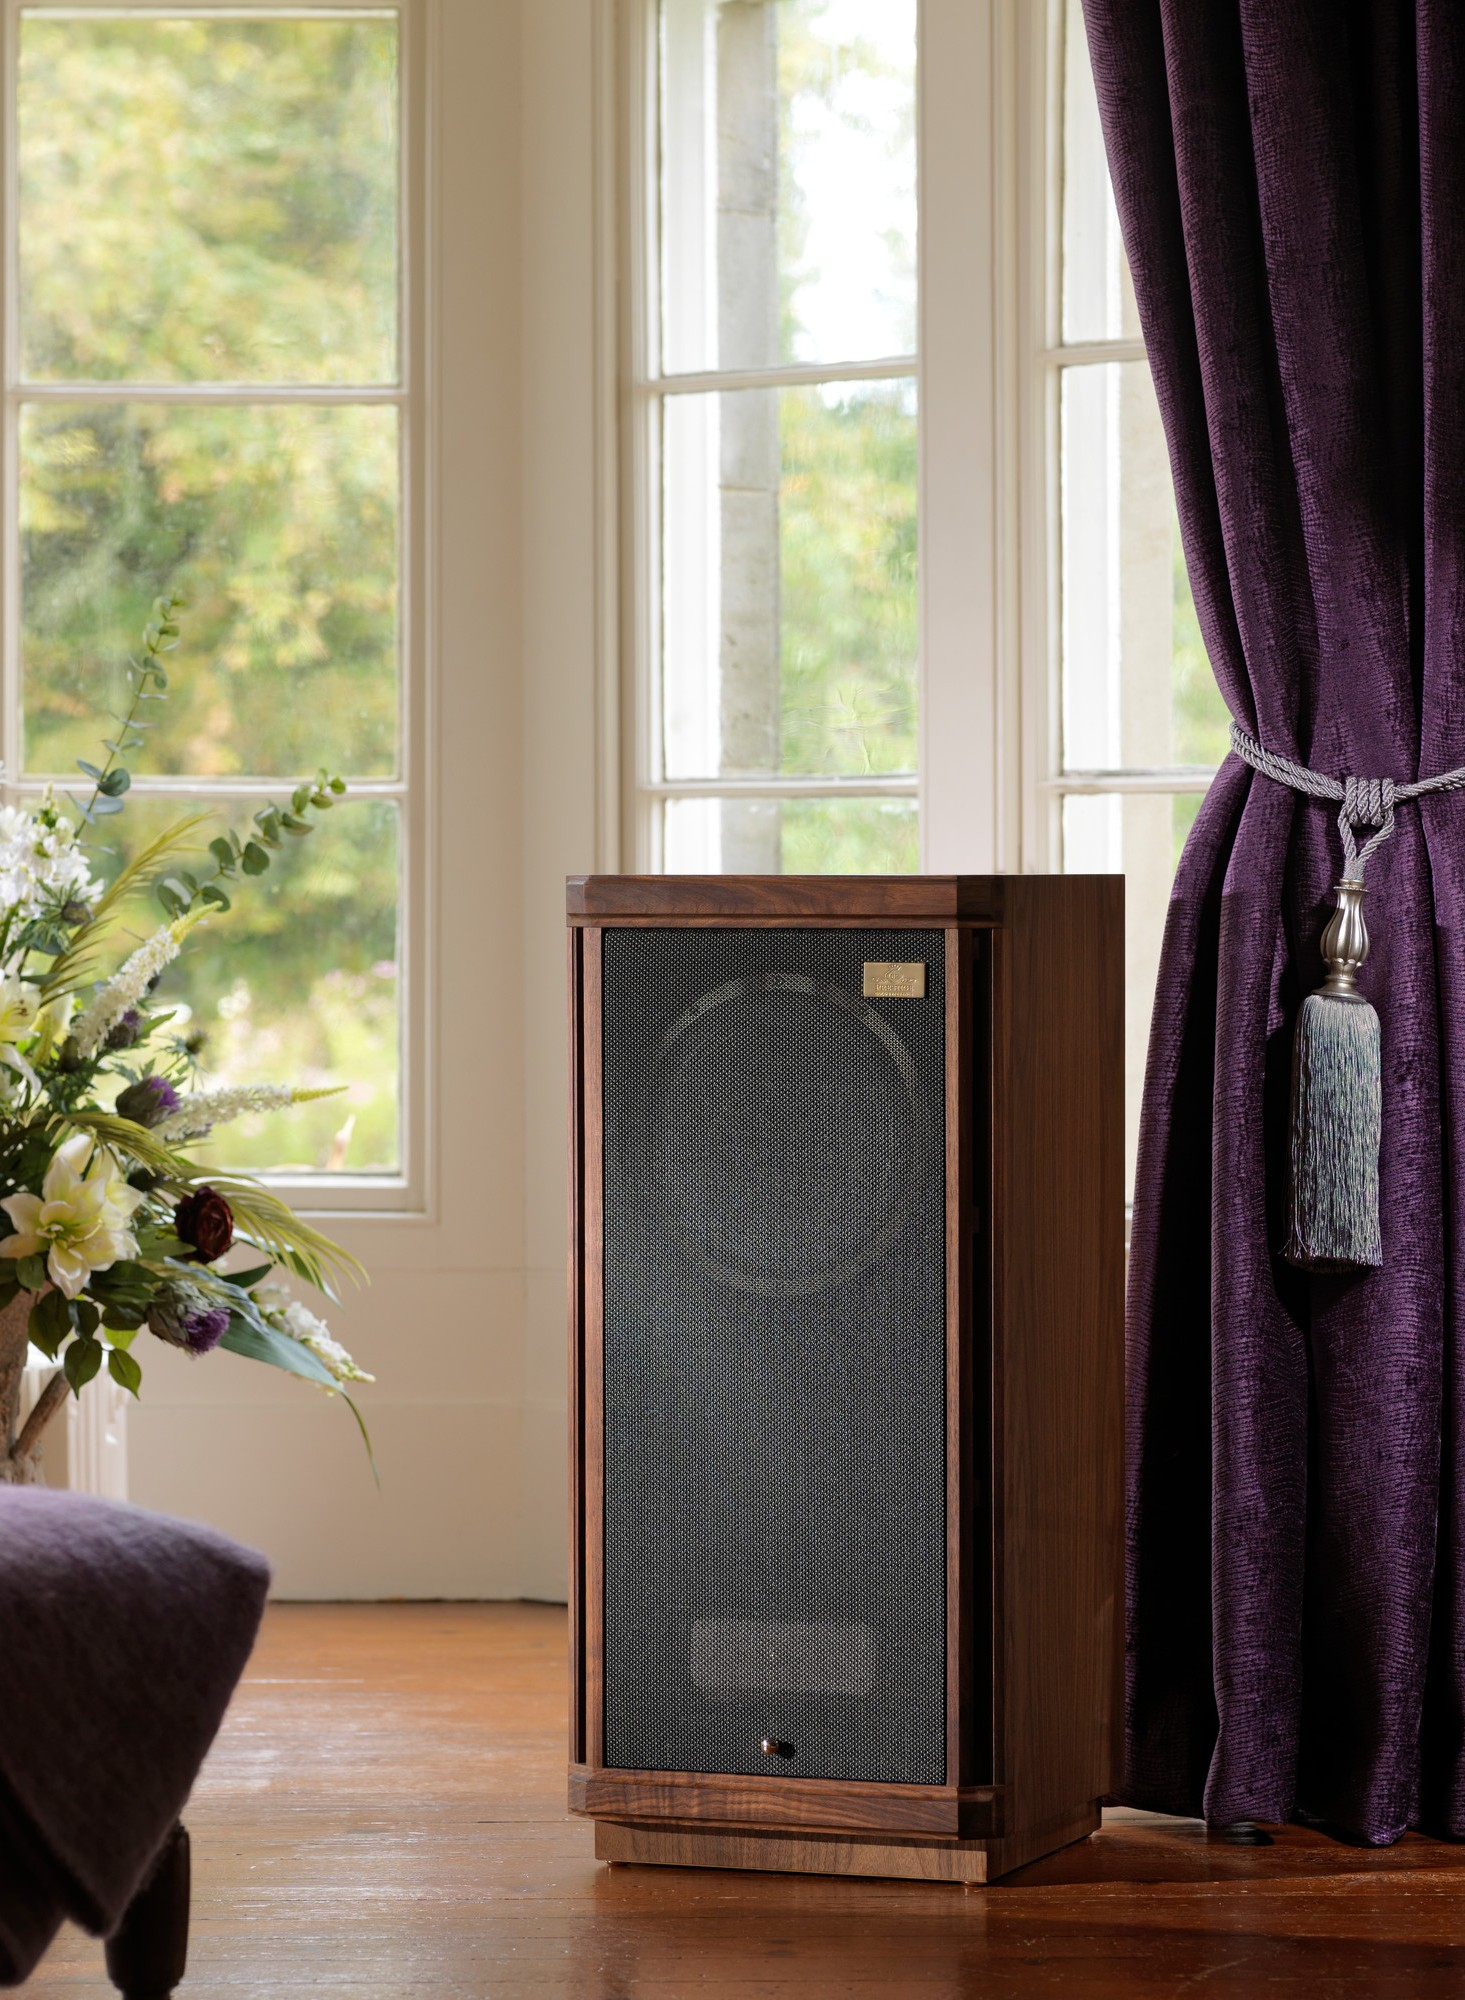 Loa cột Tannoy Stirling Gold Reference